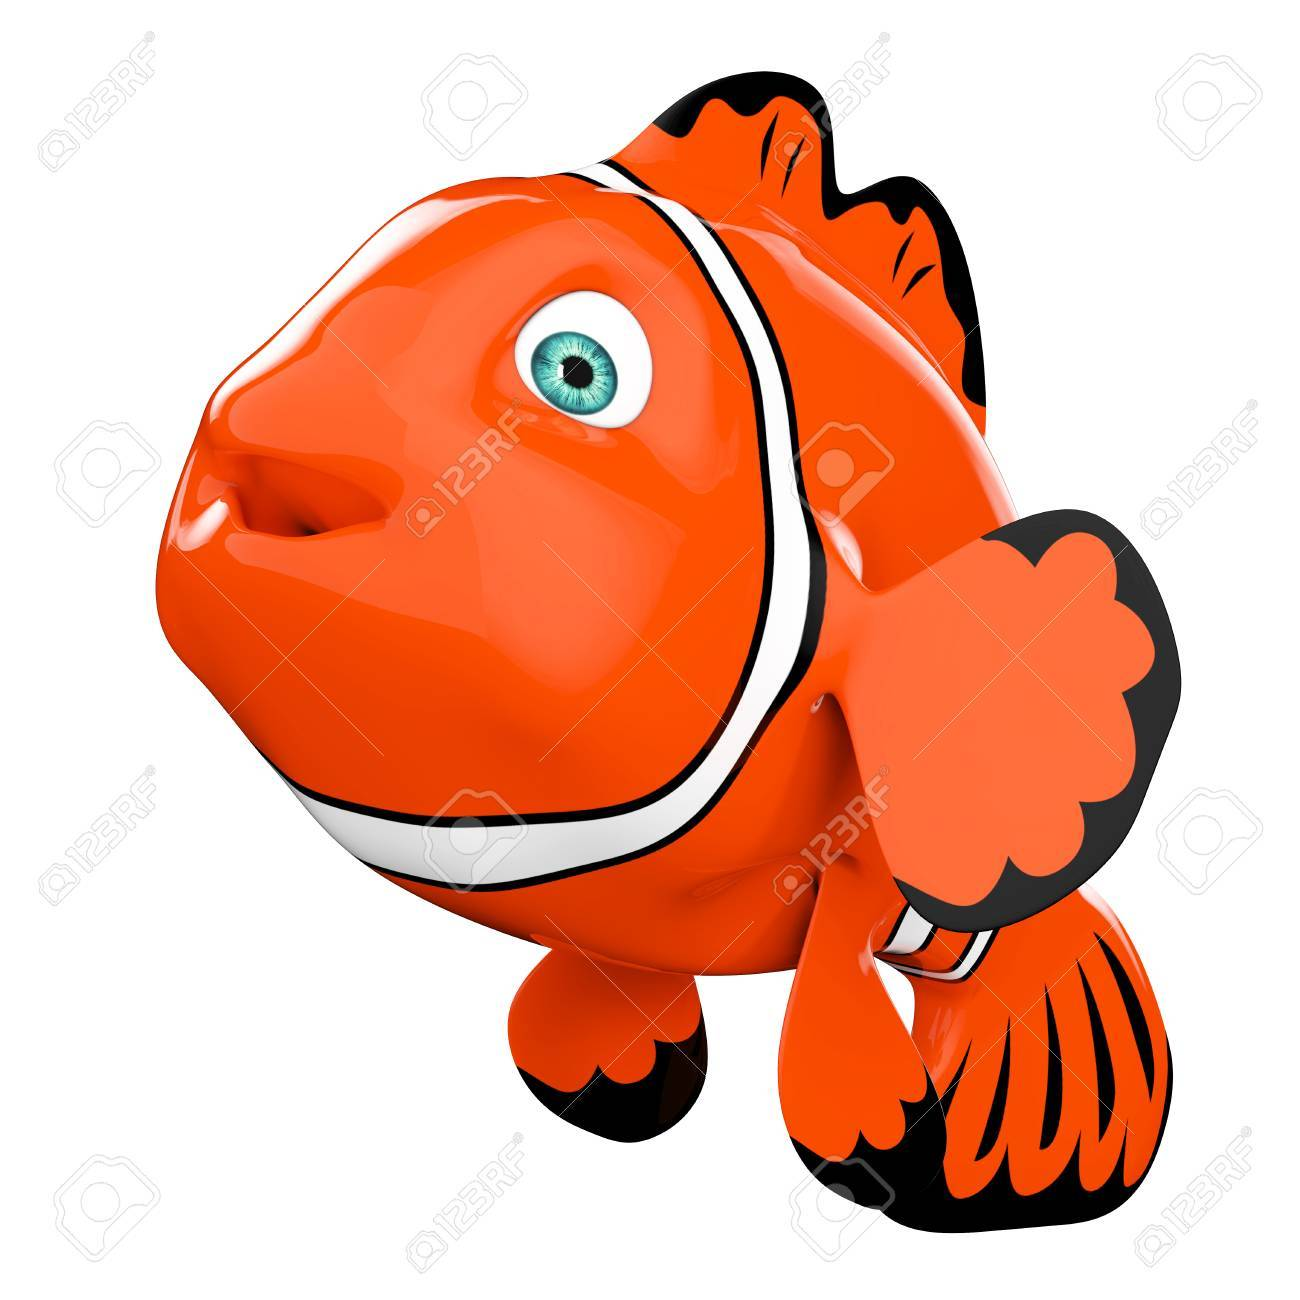 Cartoon Red Sea Clownfish On A White Background. 3d Rendering. Stock ...